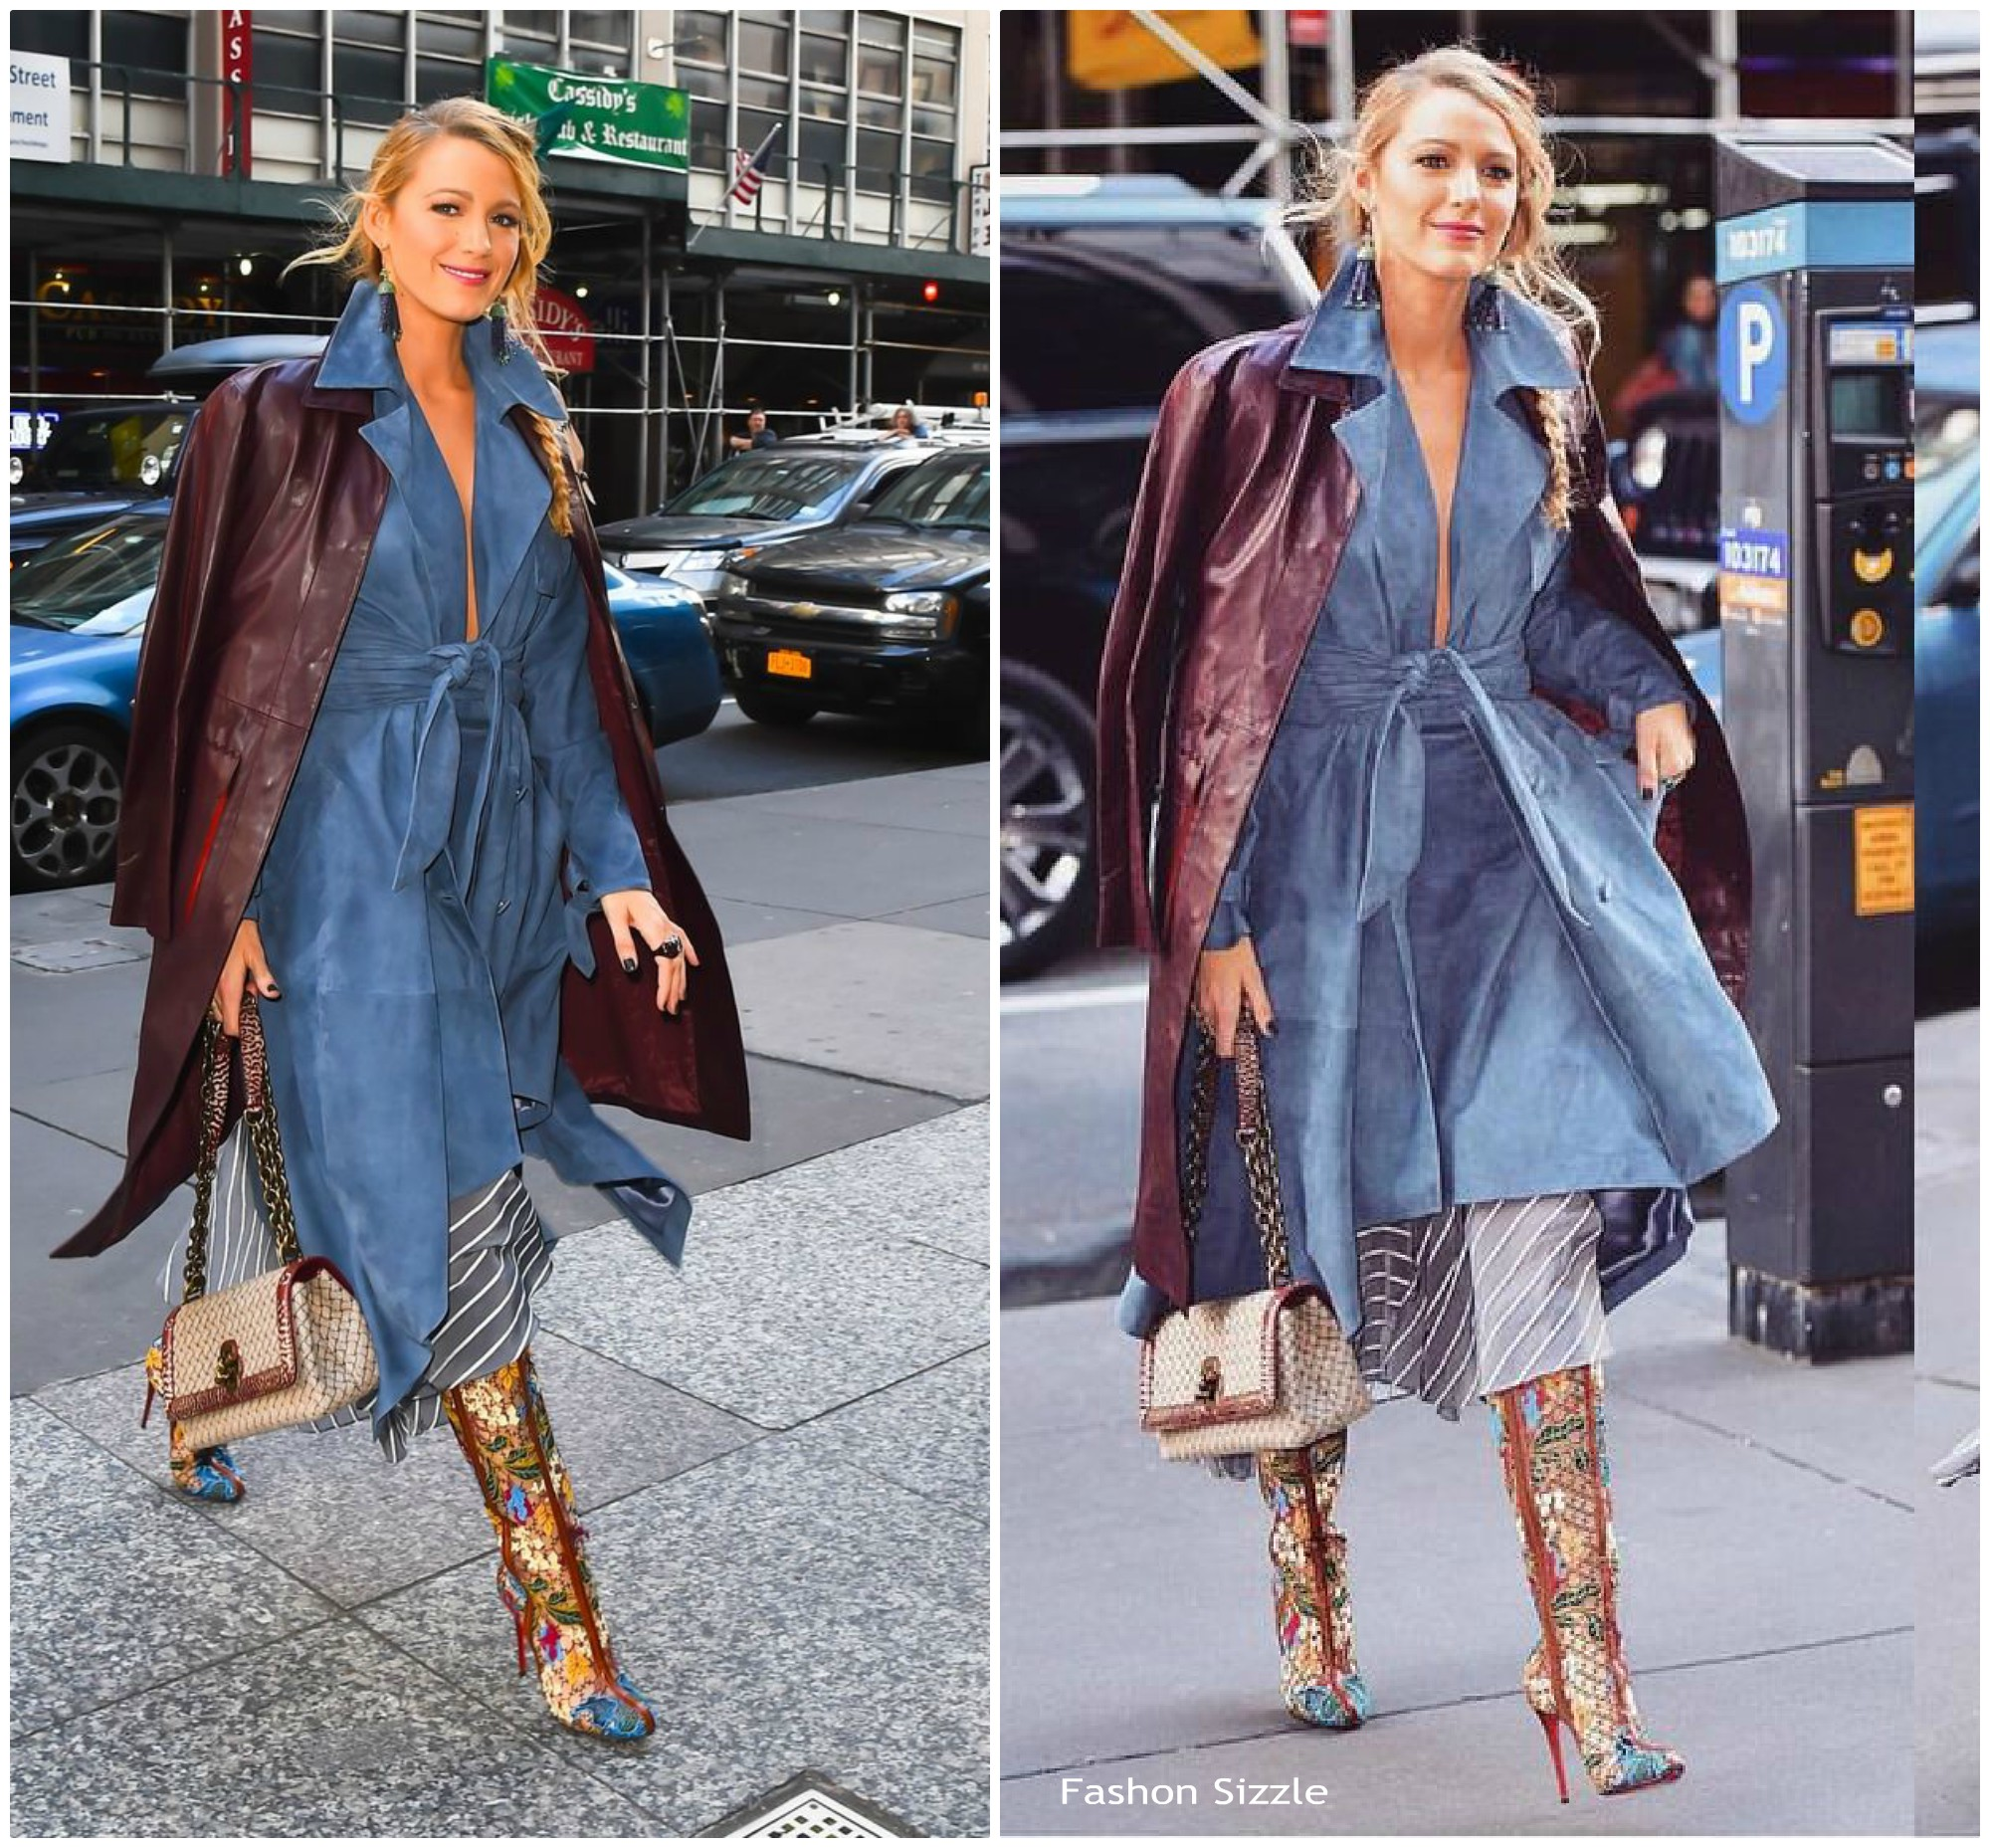 blake-lively-in-johnathan-simkhai-all-i-see-is-you-promo-in-new-york